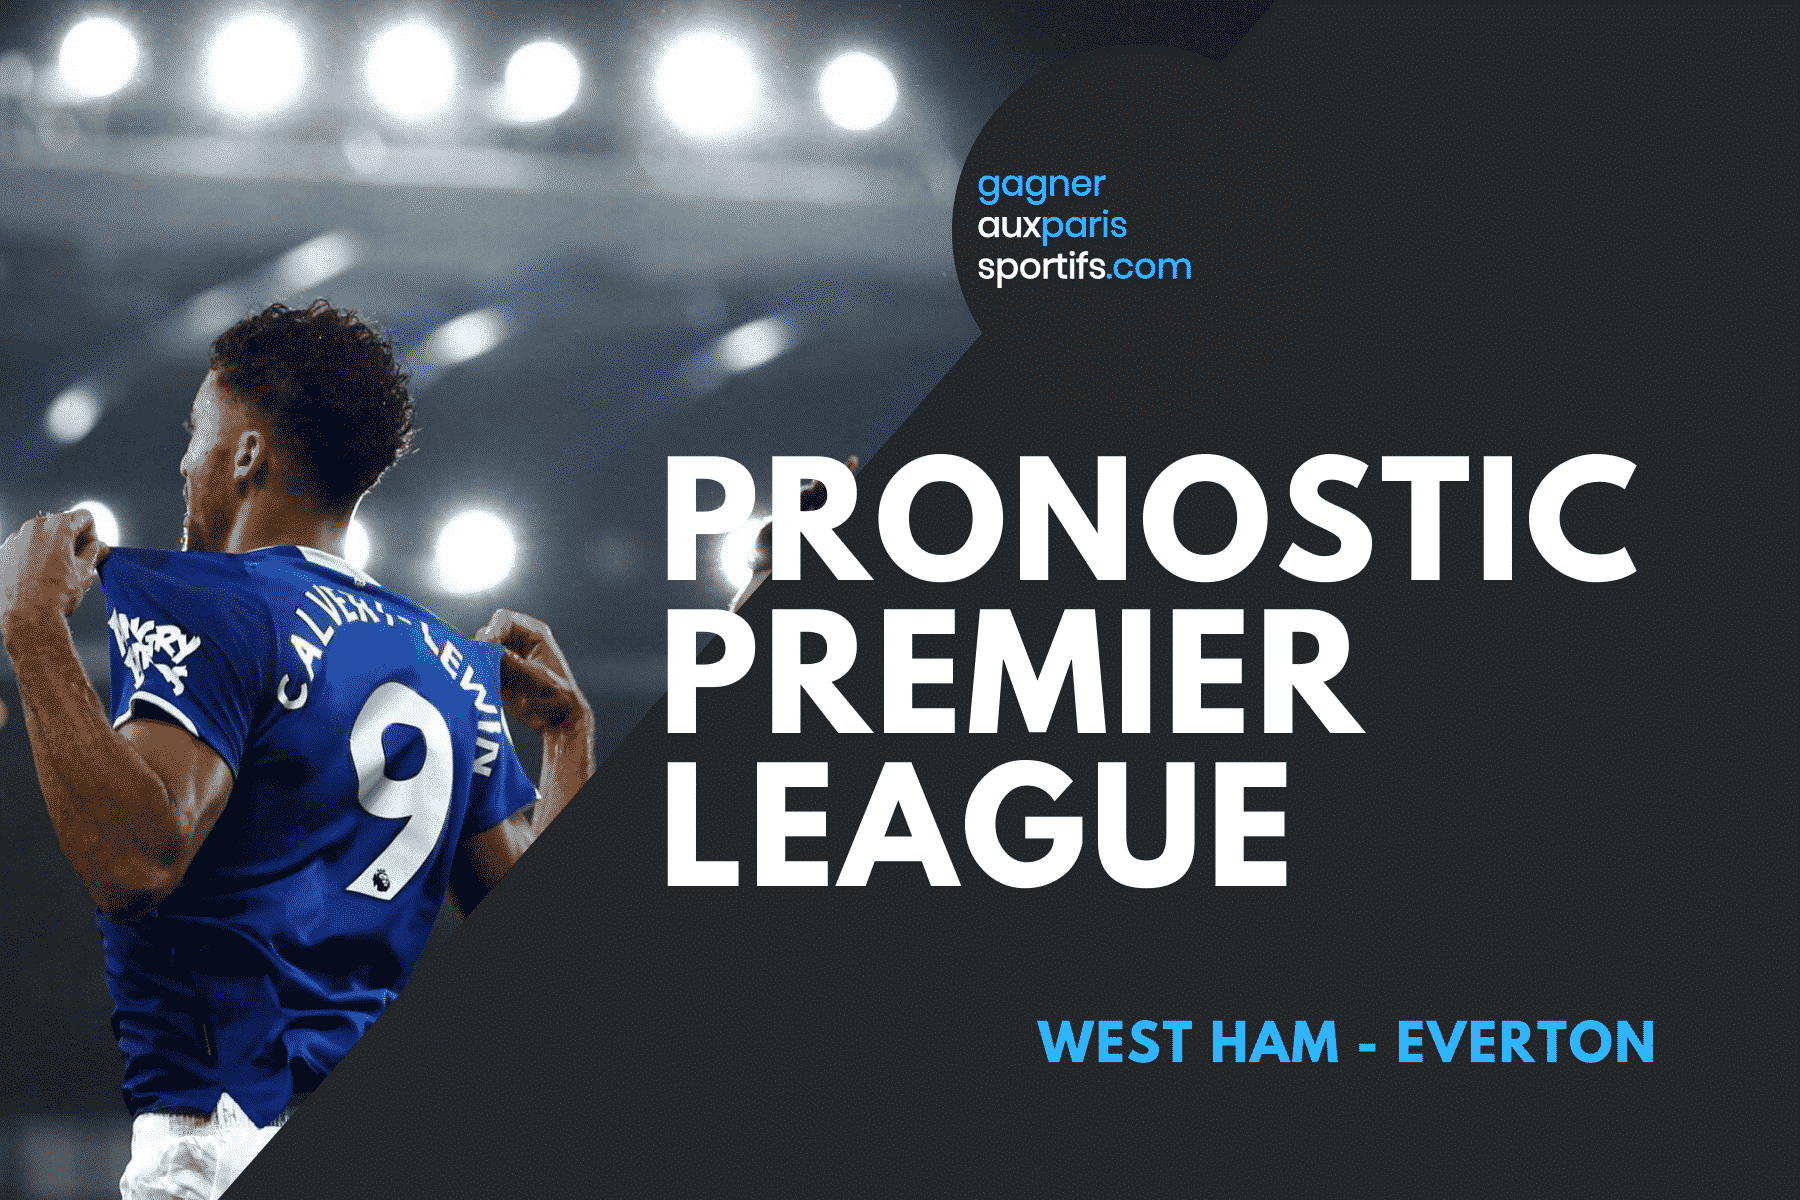 PRONOSTIC West Ham - Everton Premier League